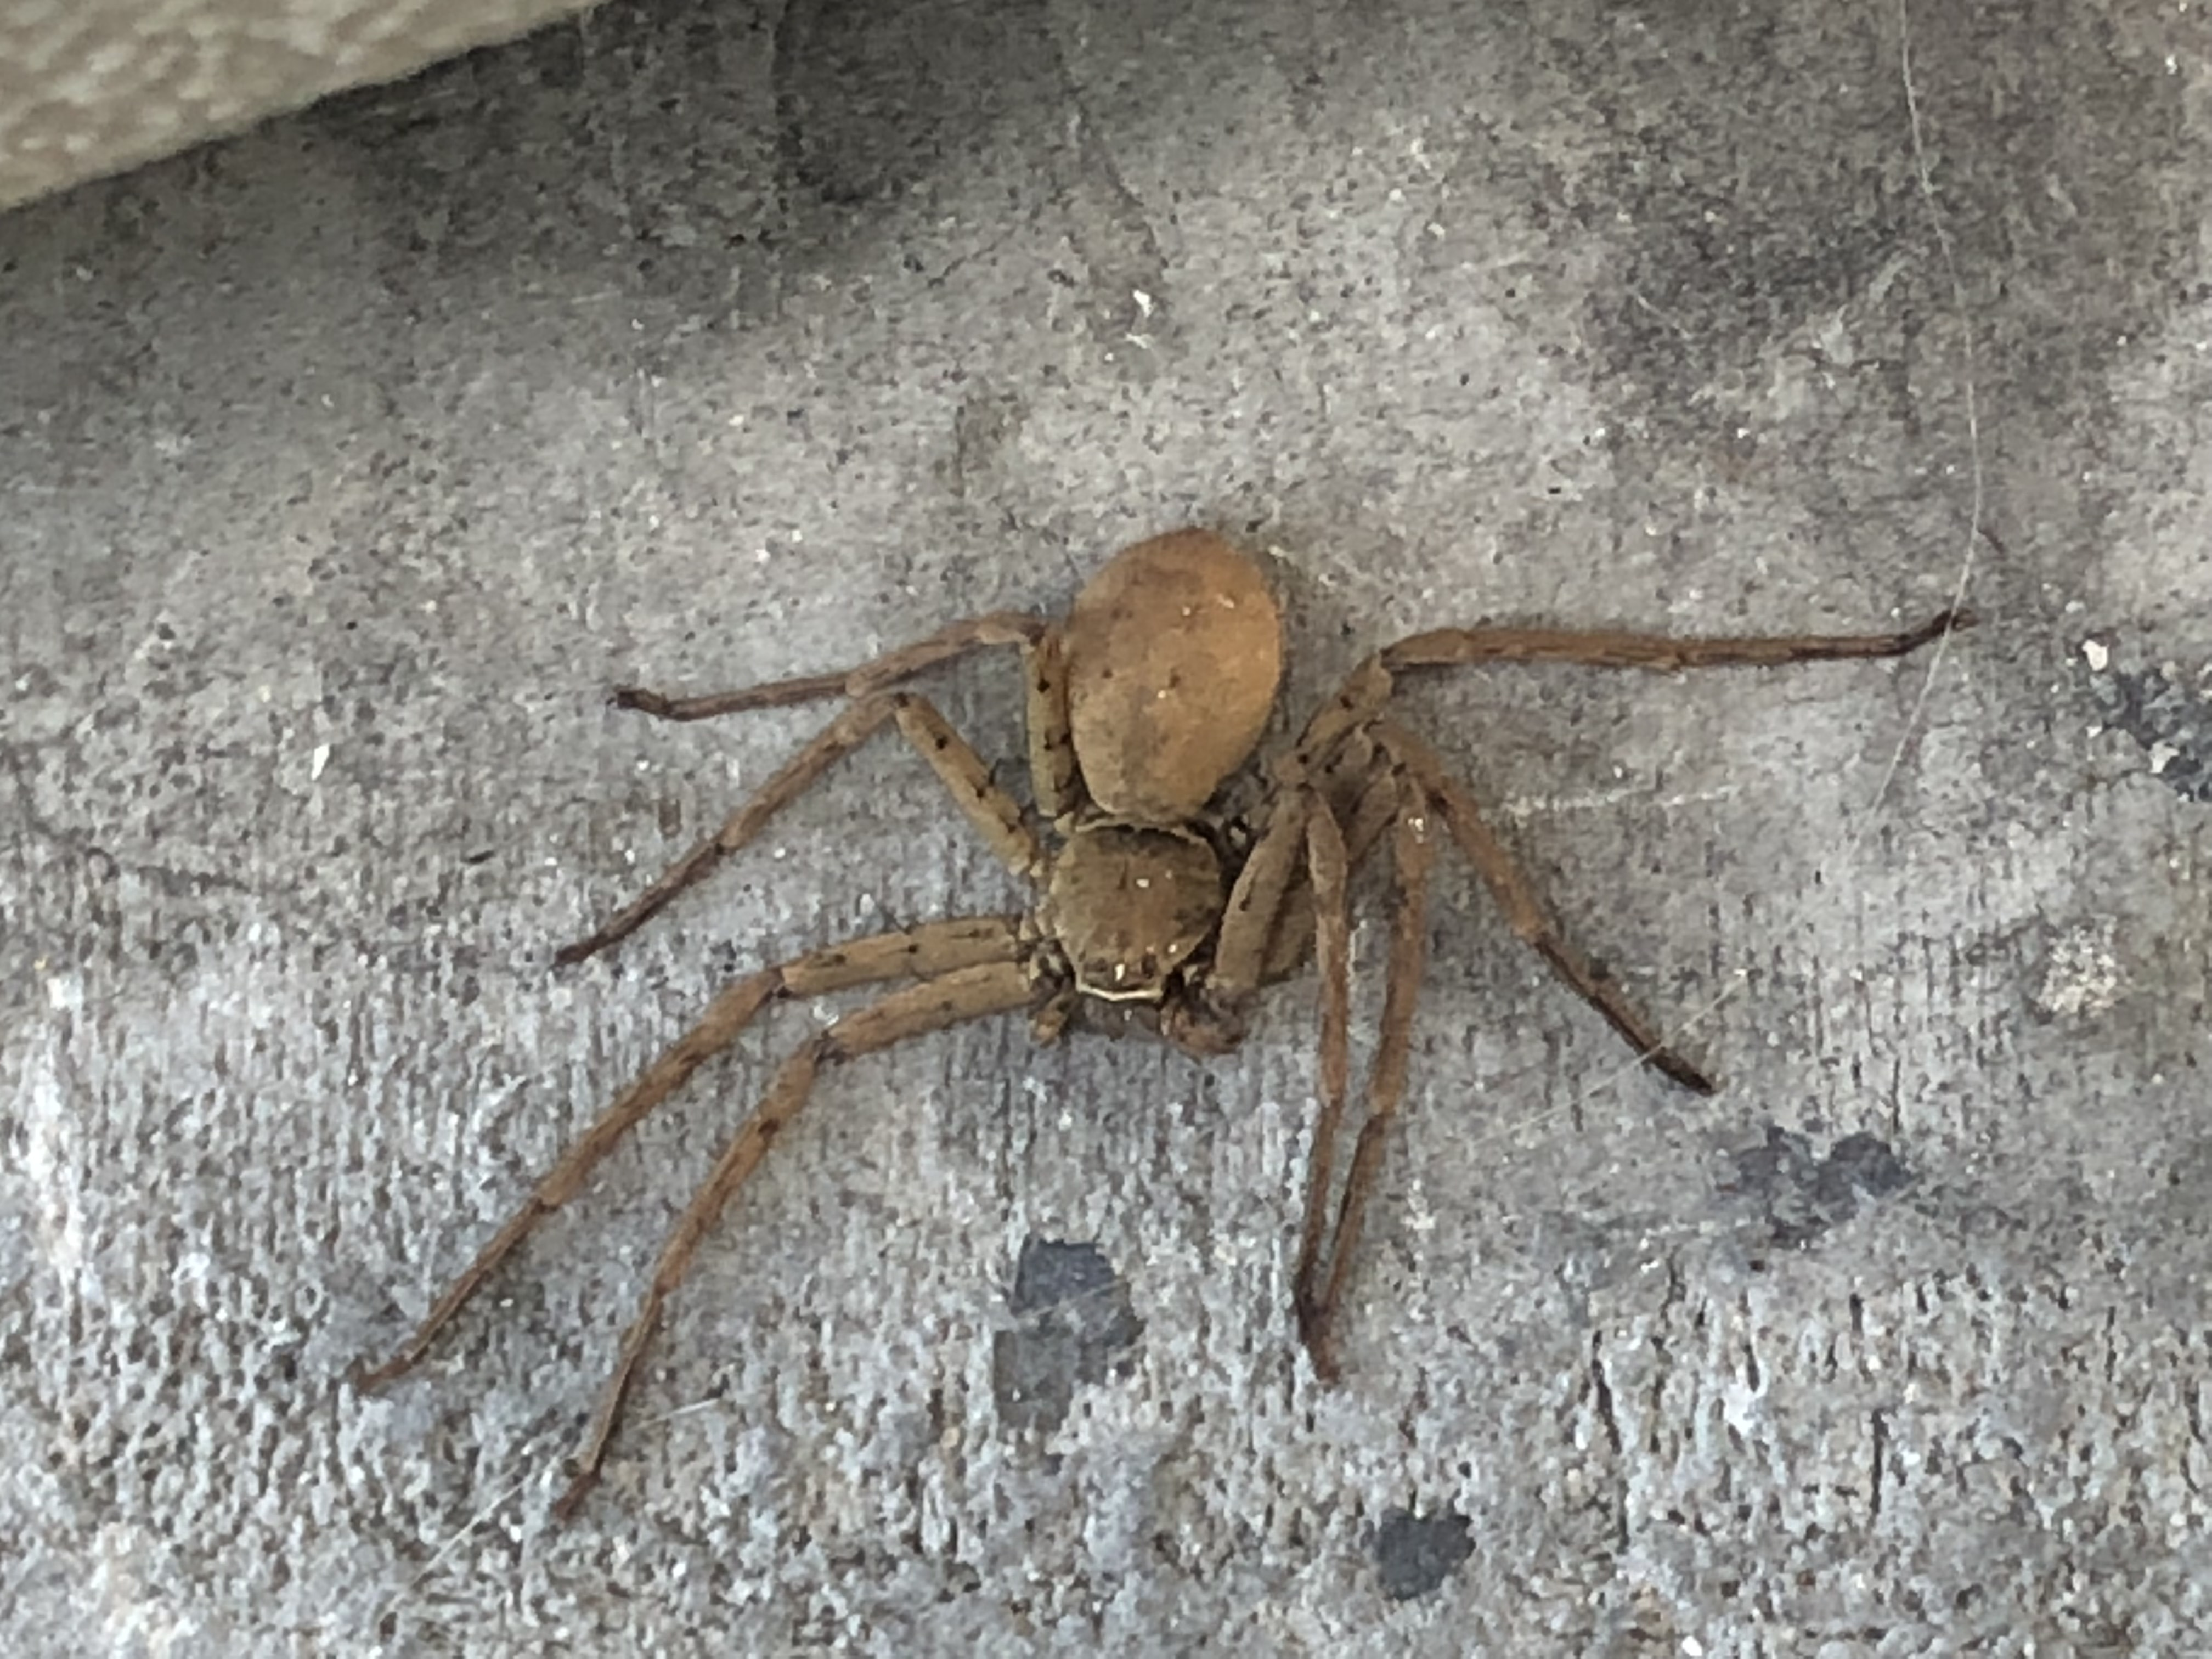 Picture of Heteropoda venatoria (Huntsman Spider) - Female - Dorsal